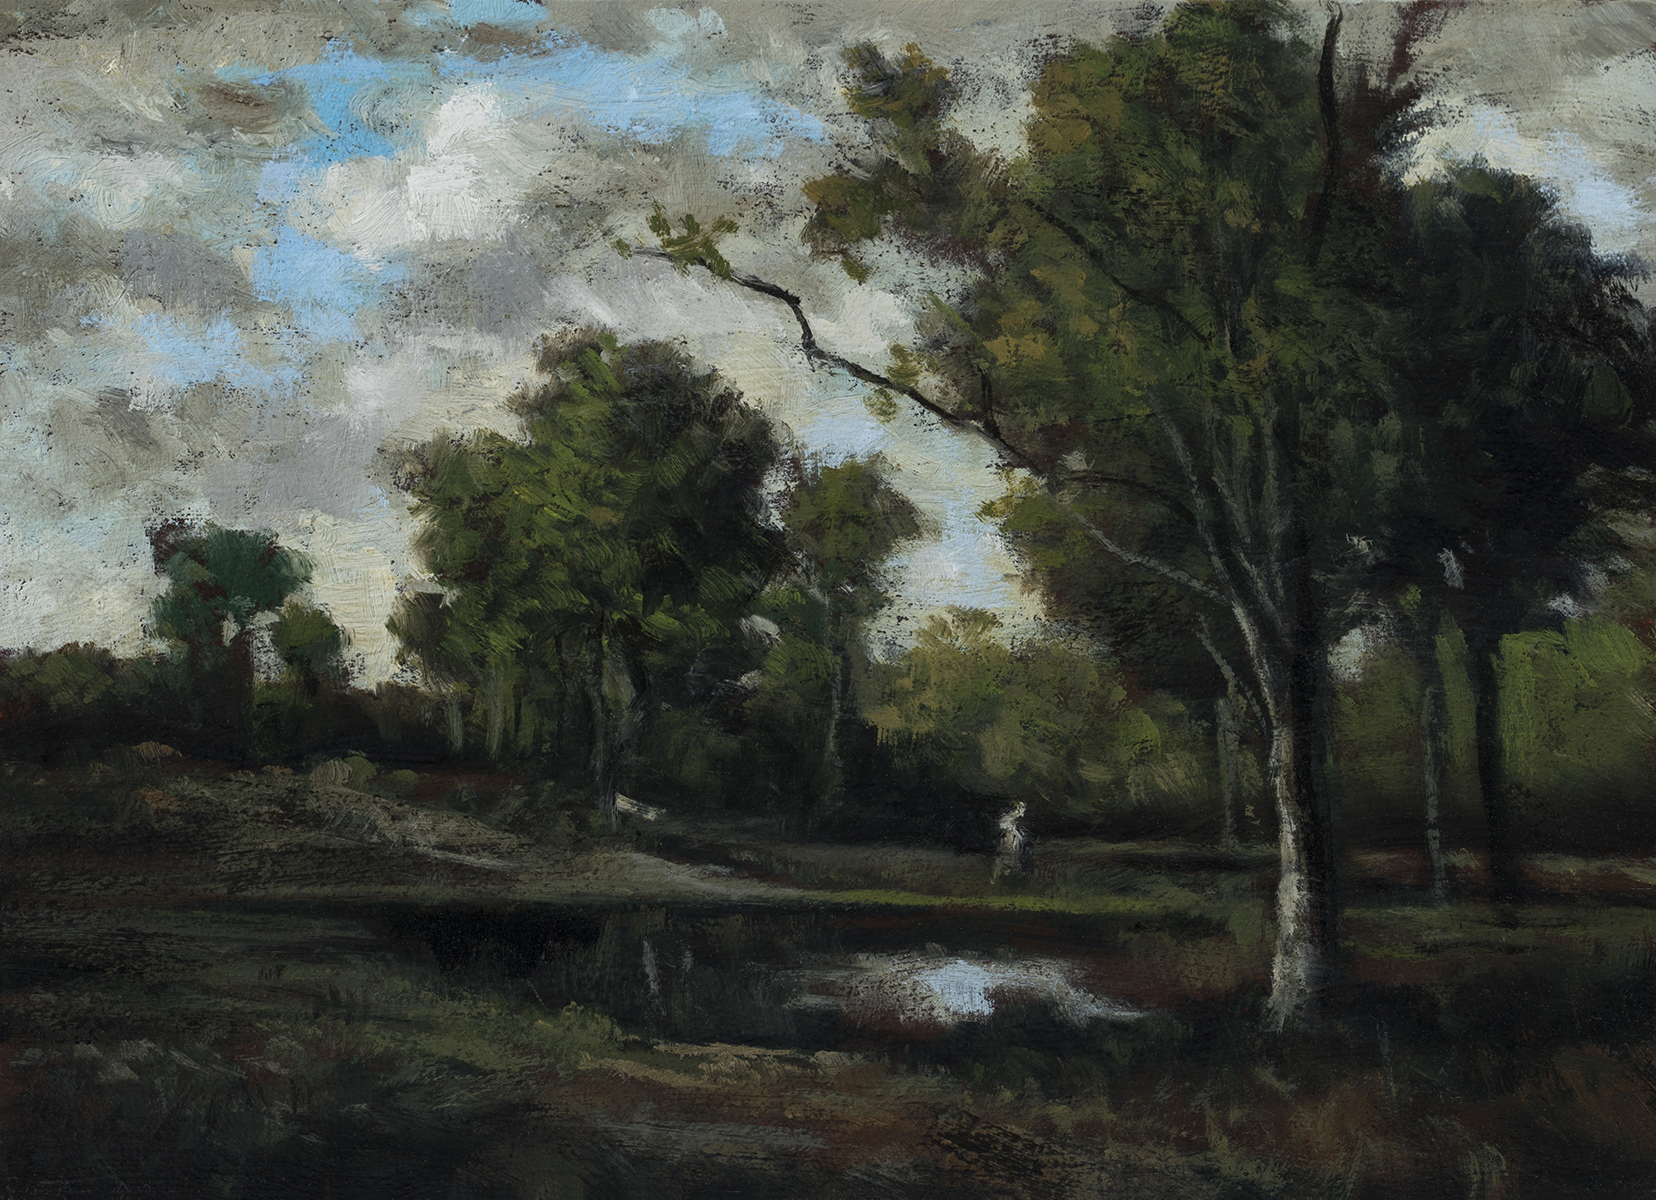 Study after: Leon Richet Foret de Fontainebleau by M Francis McCarthy - 5x7 Oil on Wood Panel